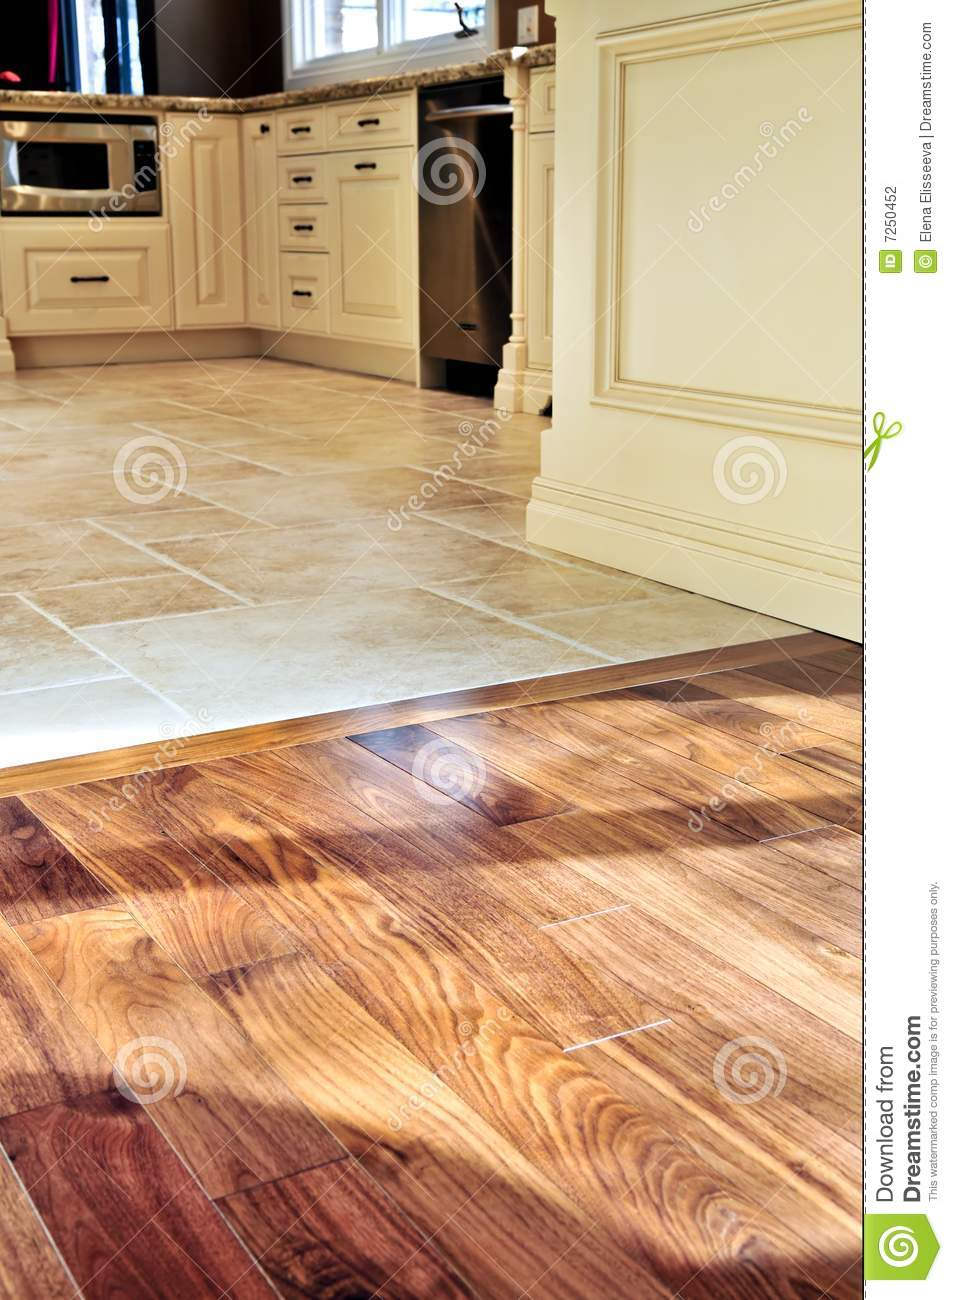 Hardwood and tile floor stock photography image 7250452 for Hardwood floor tile kitchen